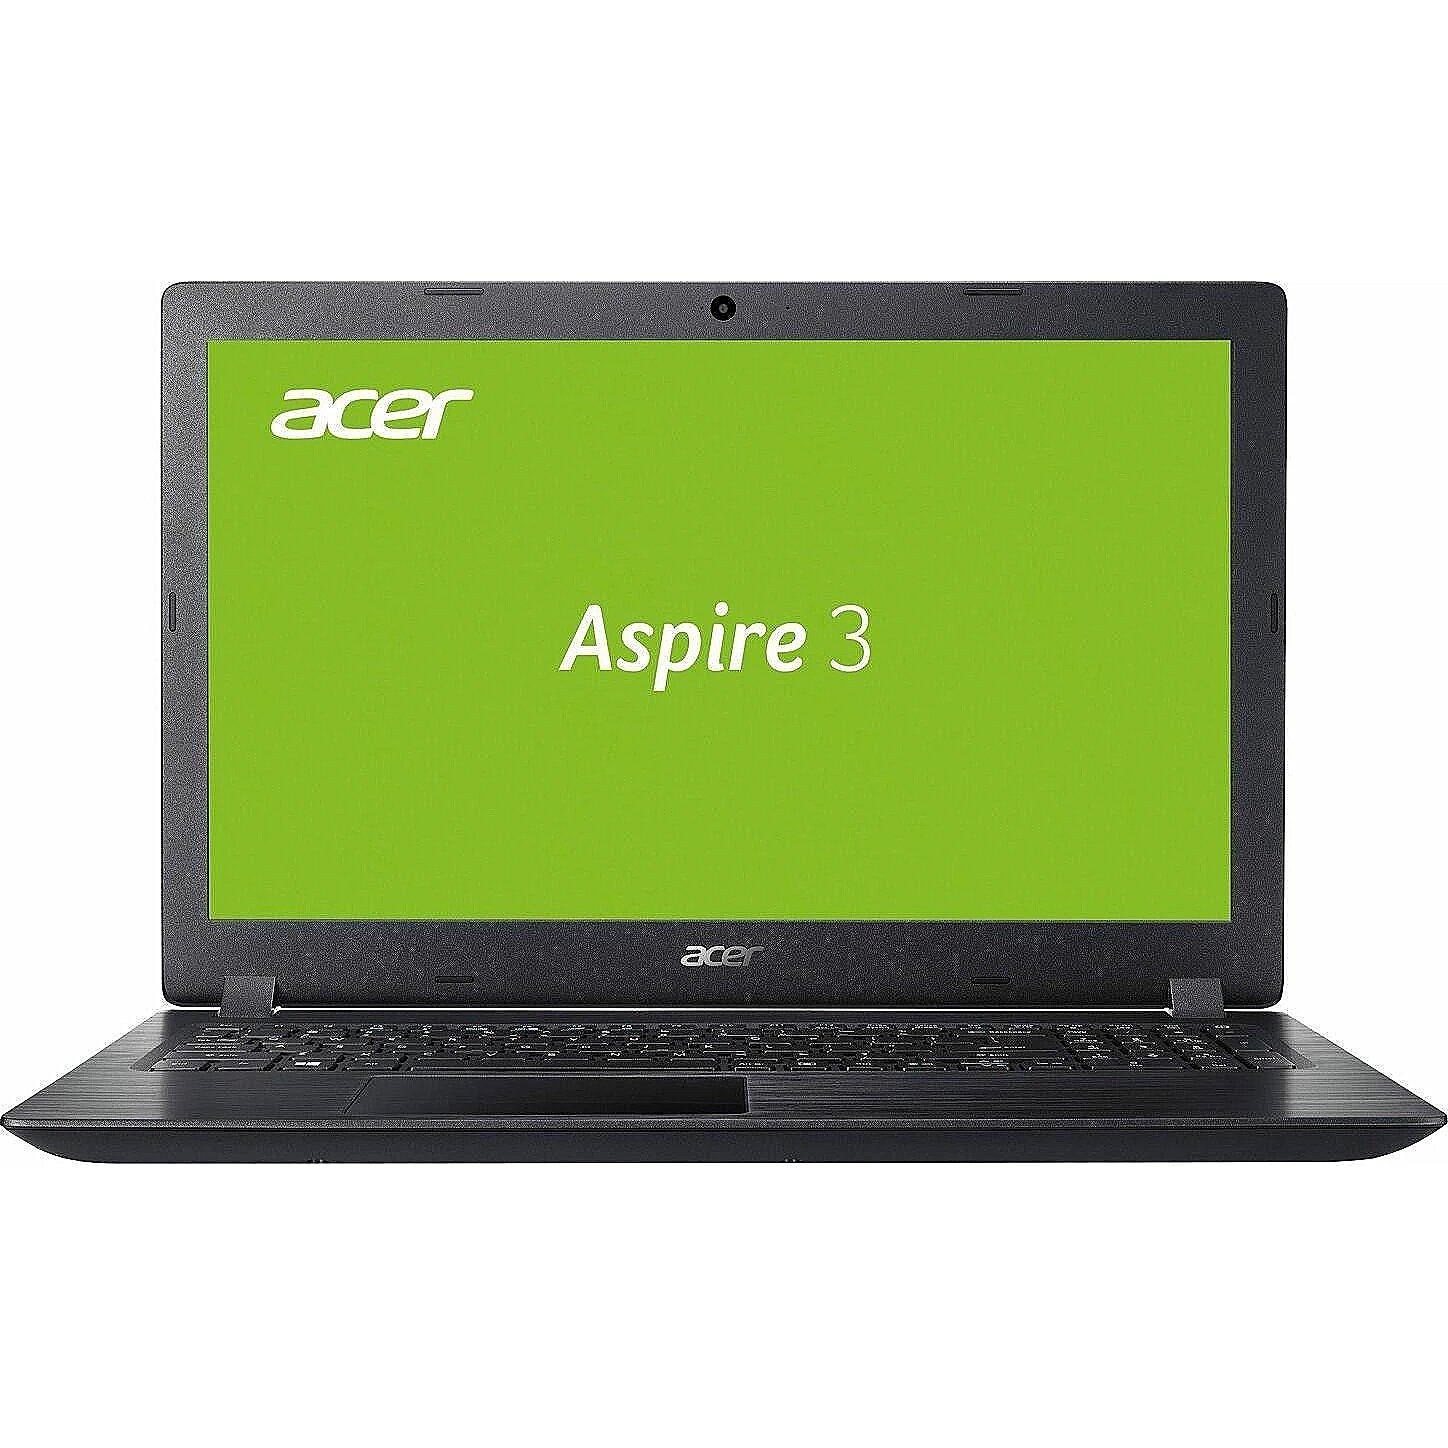 Acer Aspire 3 A315-56-57AR Black, 15.6